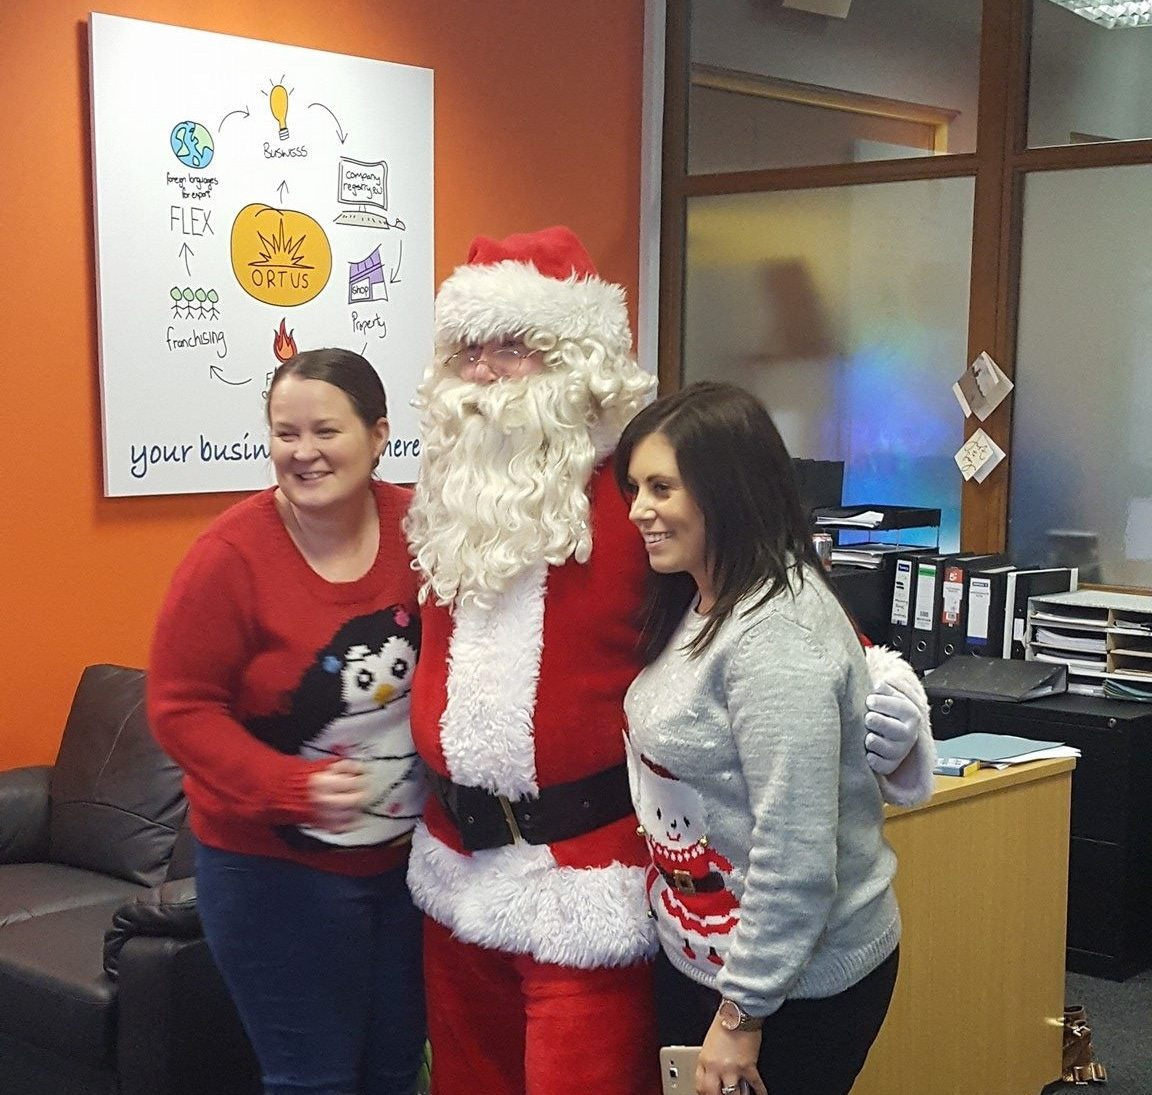 Christmas Jumper Day 2016 - The Ortus Group